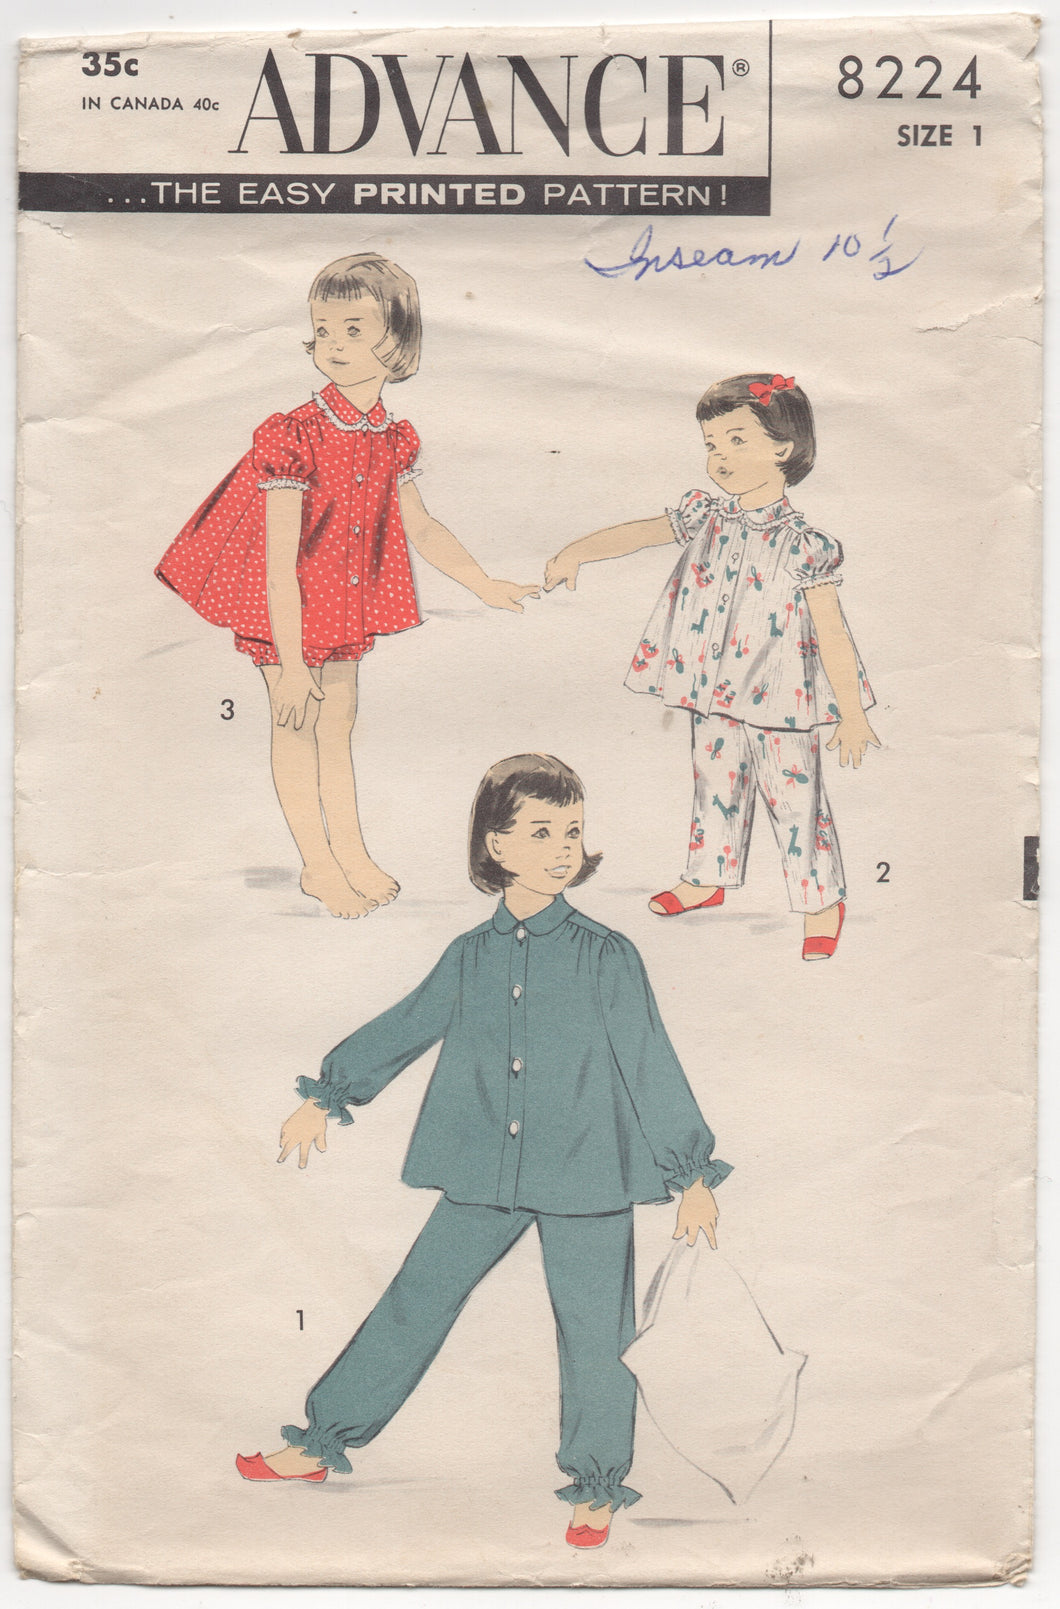 1950's Advance Child's Two Piece Pajamas with Shorts or pants - Chest 20